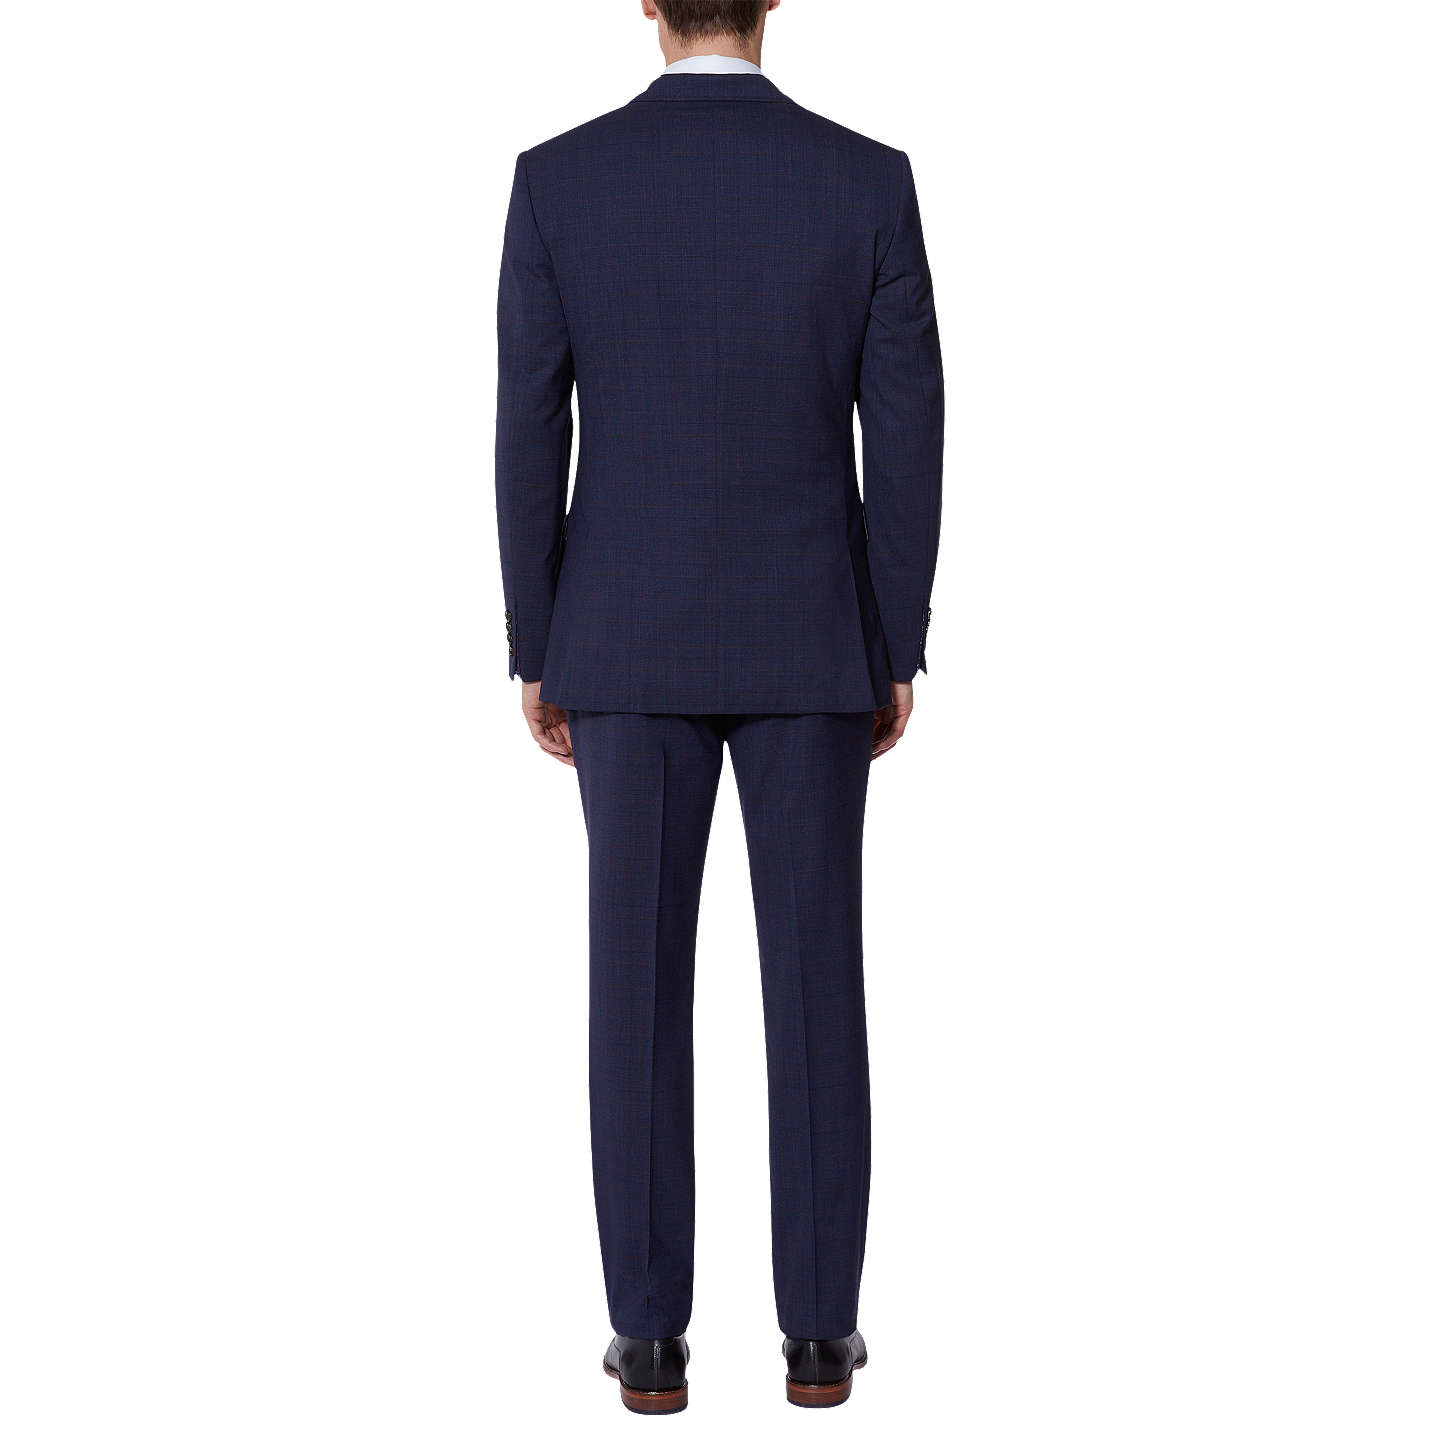 BuyTed Baker Vienaj Check Tailored Suit Jacket, Blue, 42L Online at johnlewis.com